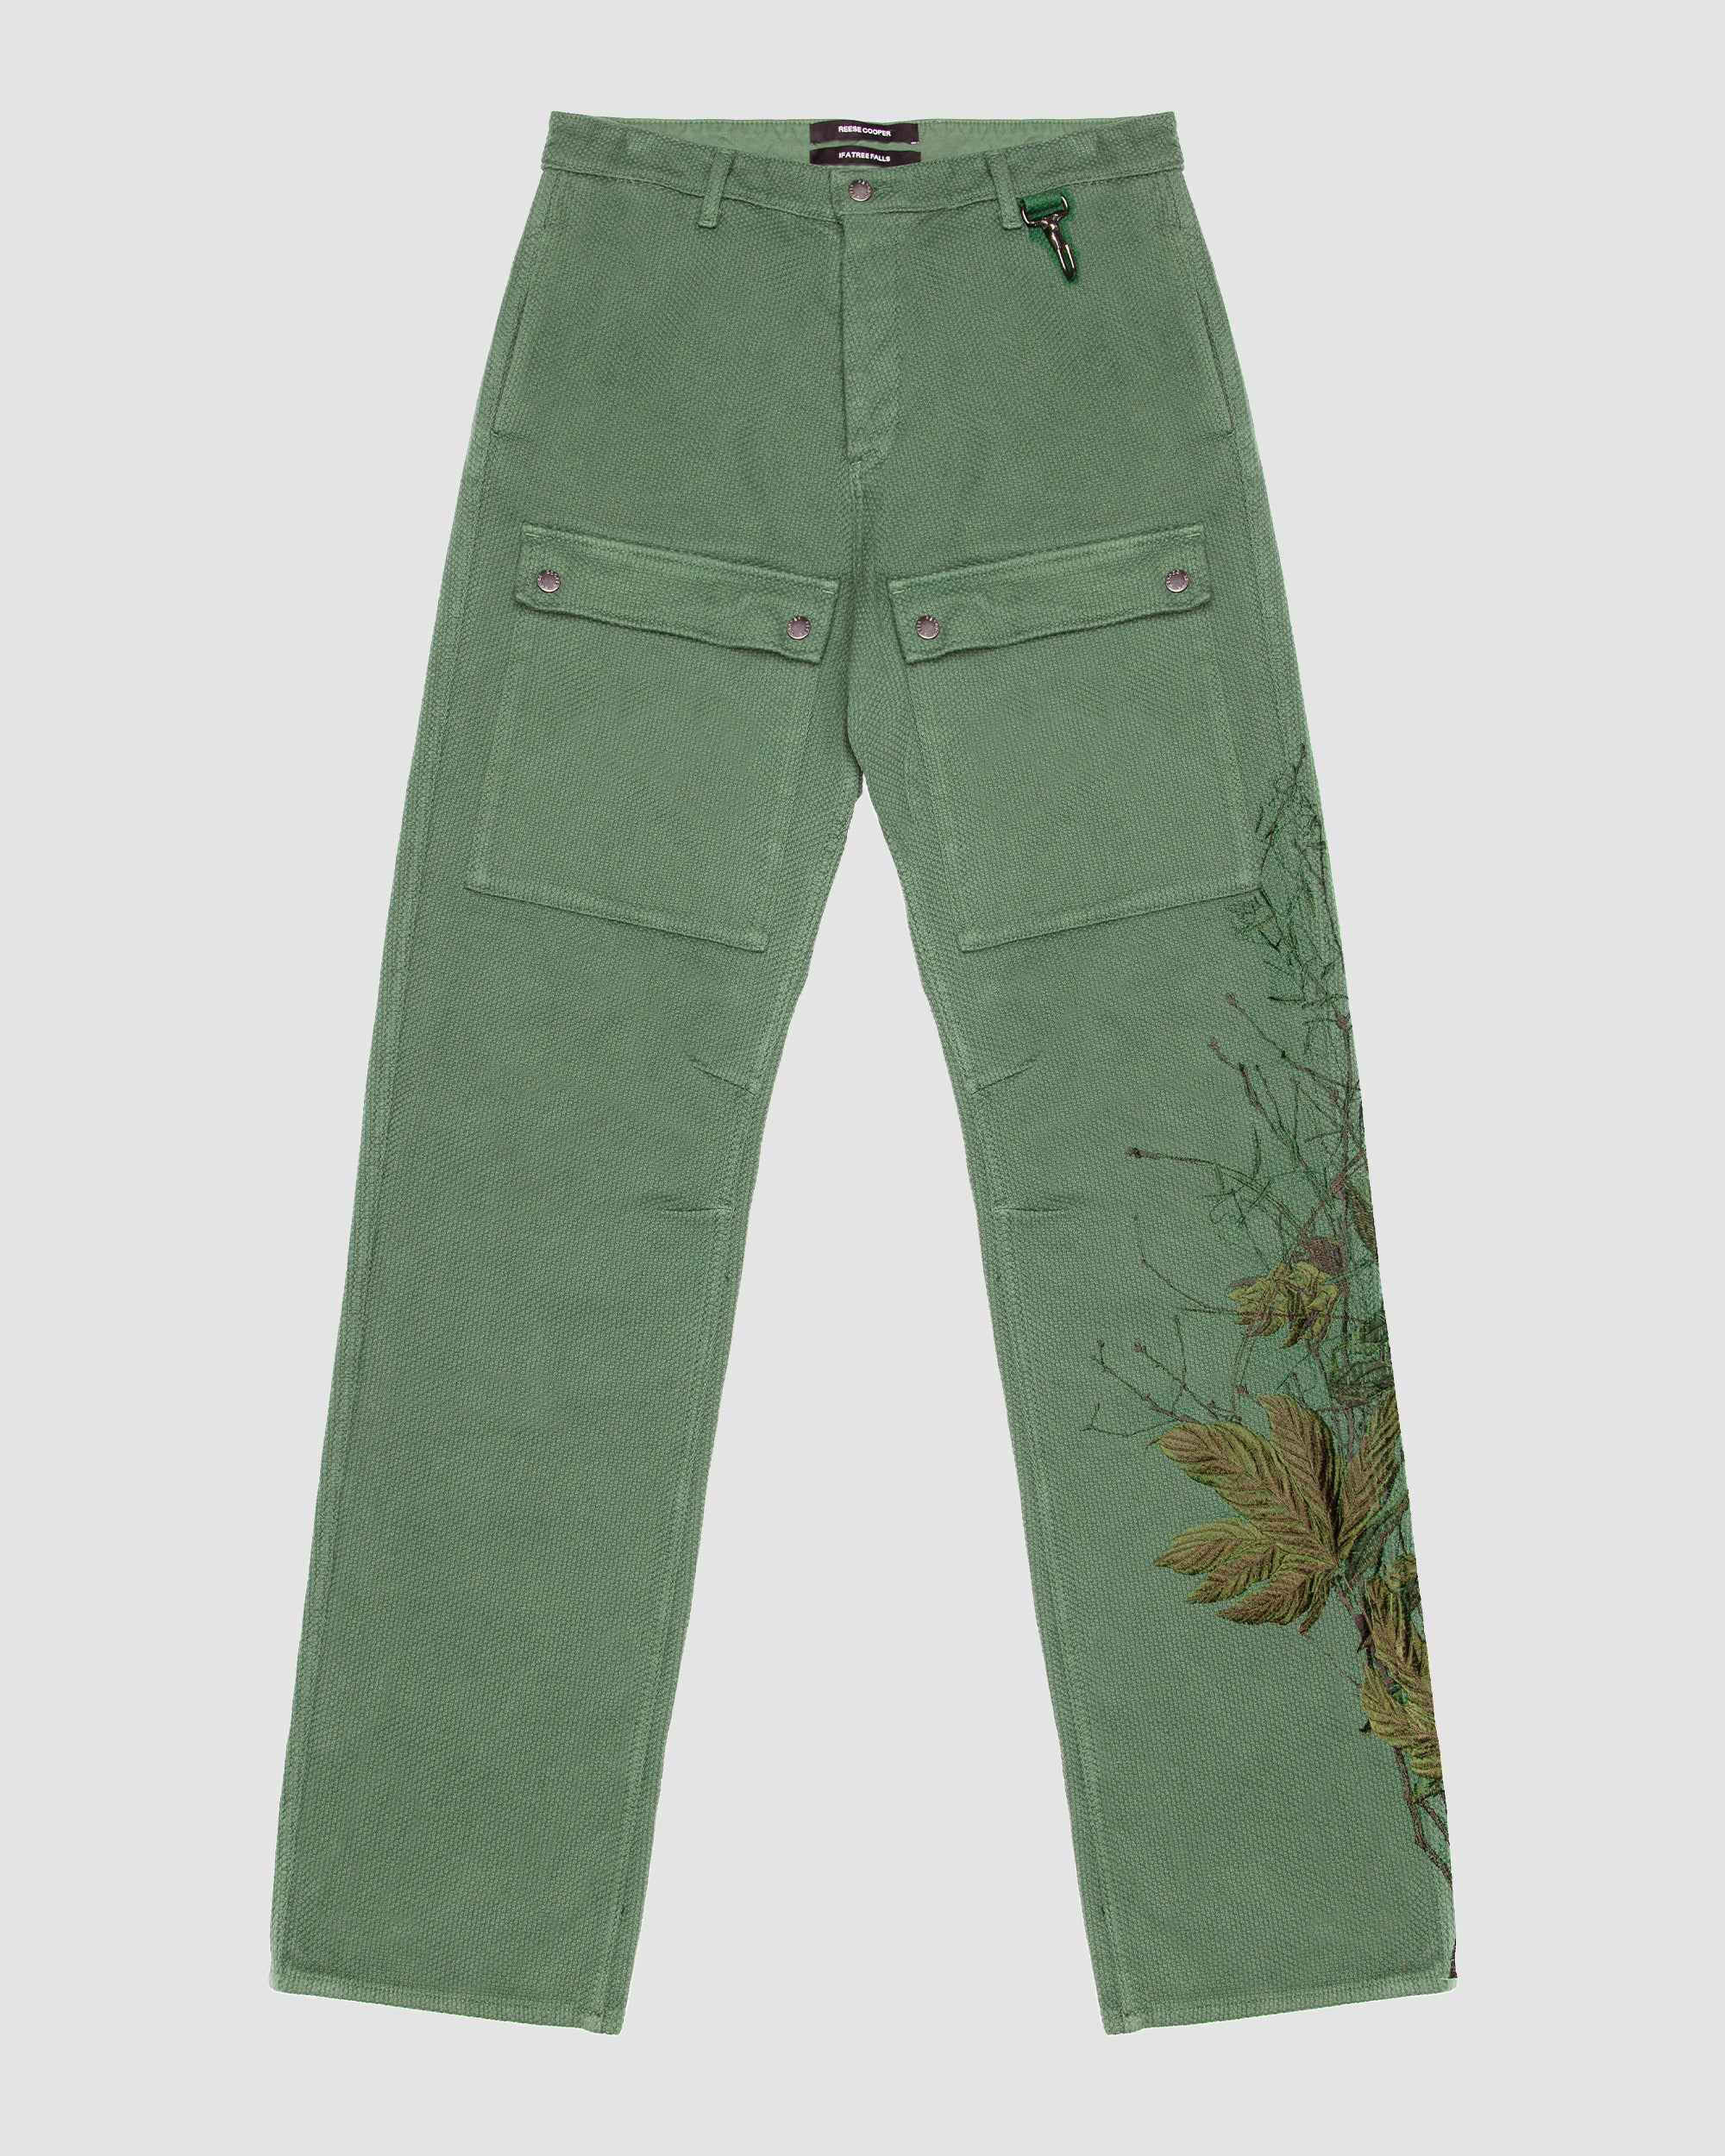 Basketweave Cargo Trouser with Branch Embroidery in Sage